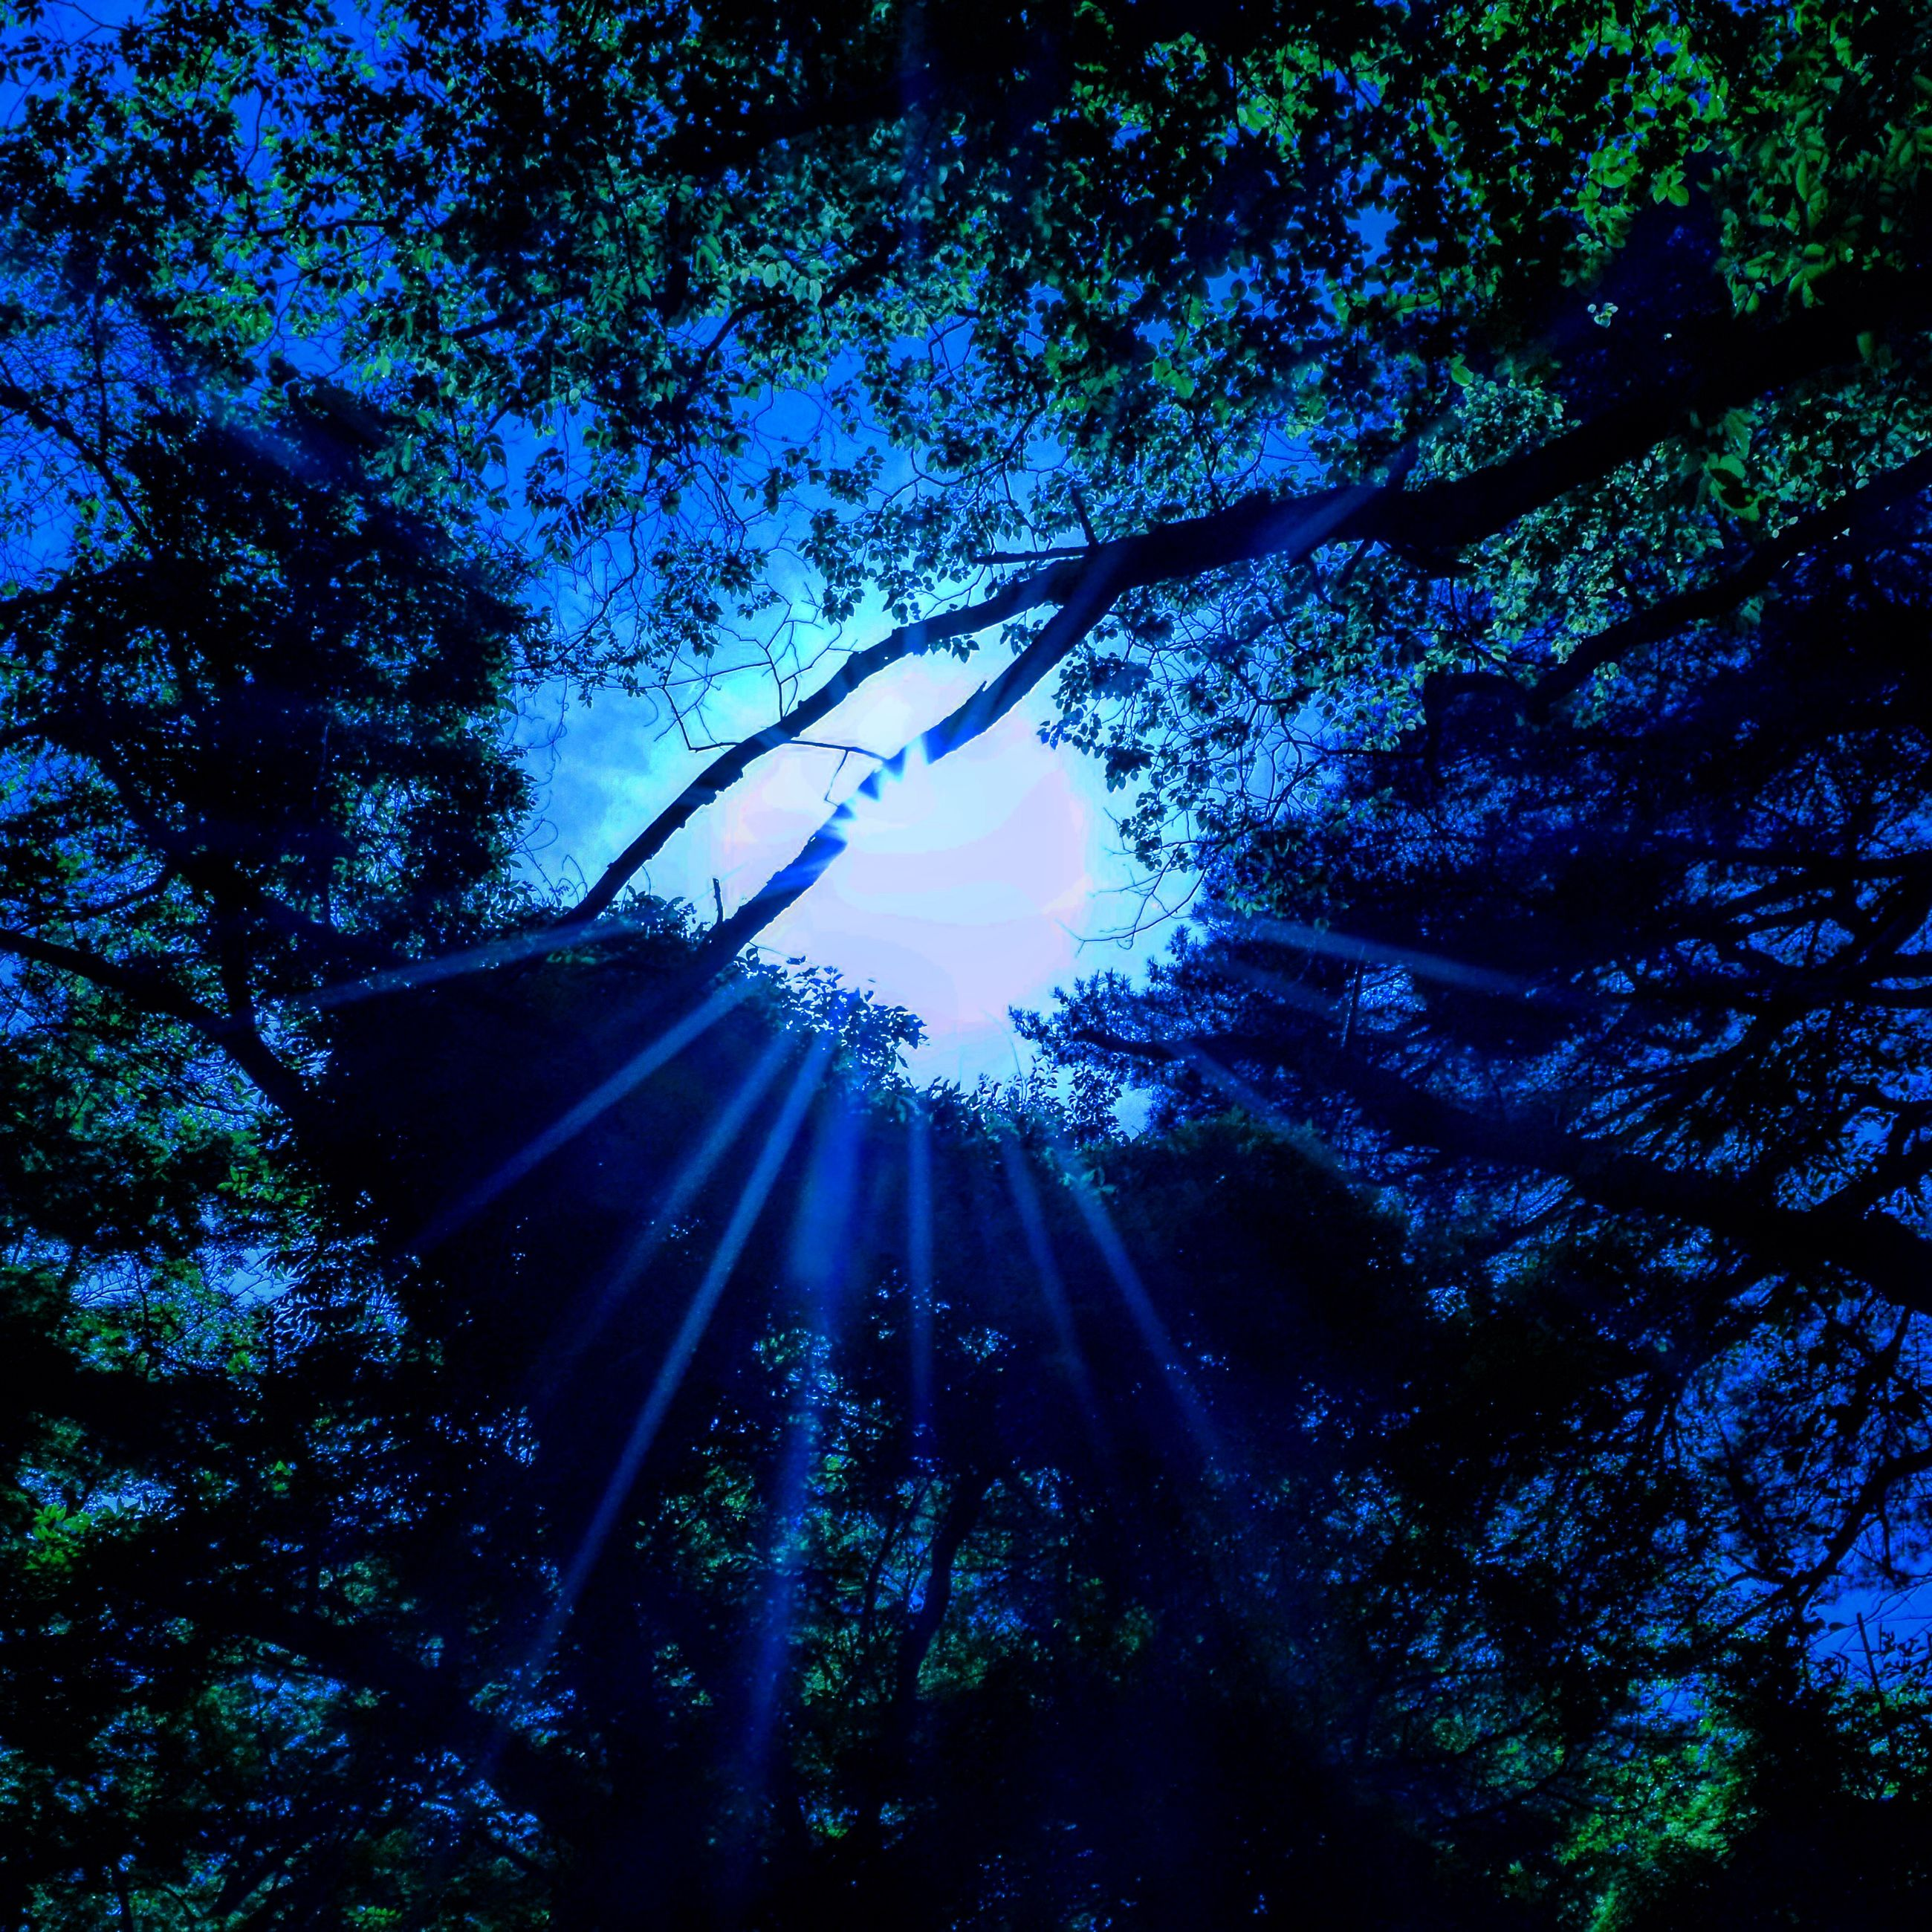 low angle view, tree, growth, branch, nature, sunlight, sky, outdoors, tranquility, beauty in nature, no people, day, sun, sunbeam, tall - high, clear sky, lens flare, forest, silhouette, blue